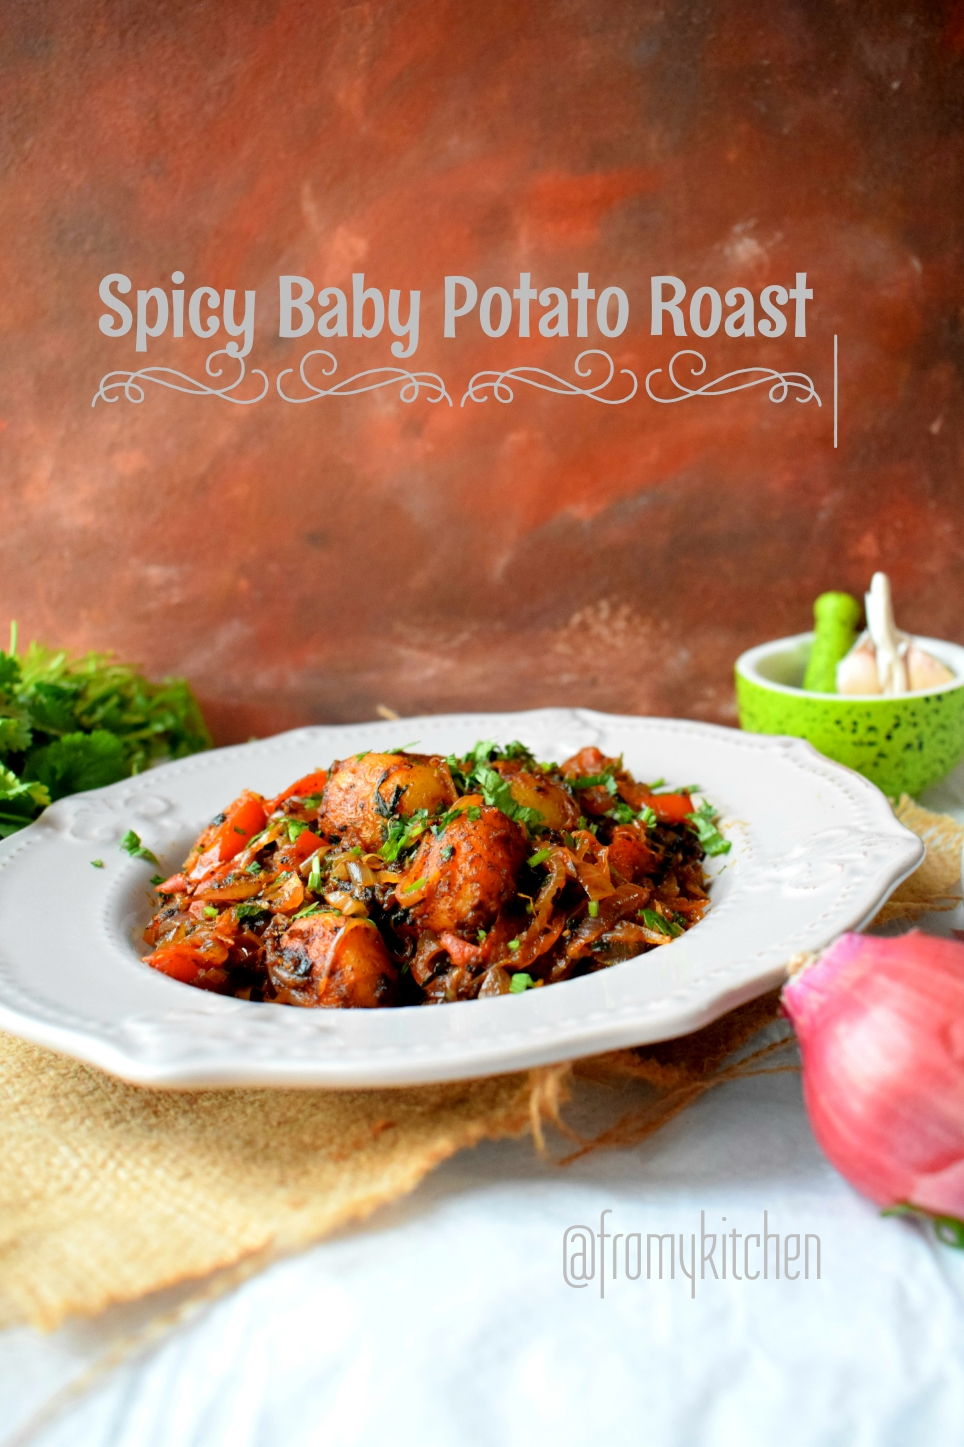 Spicy Baby Potato Roast